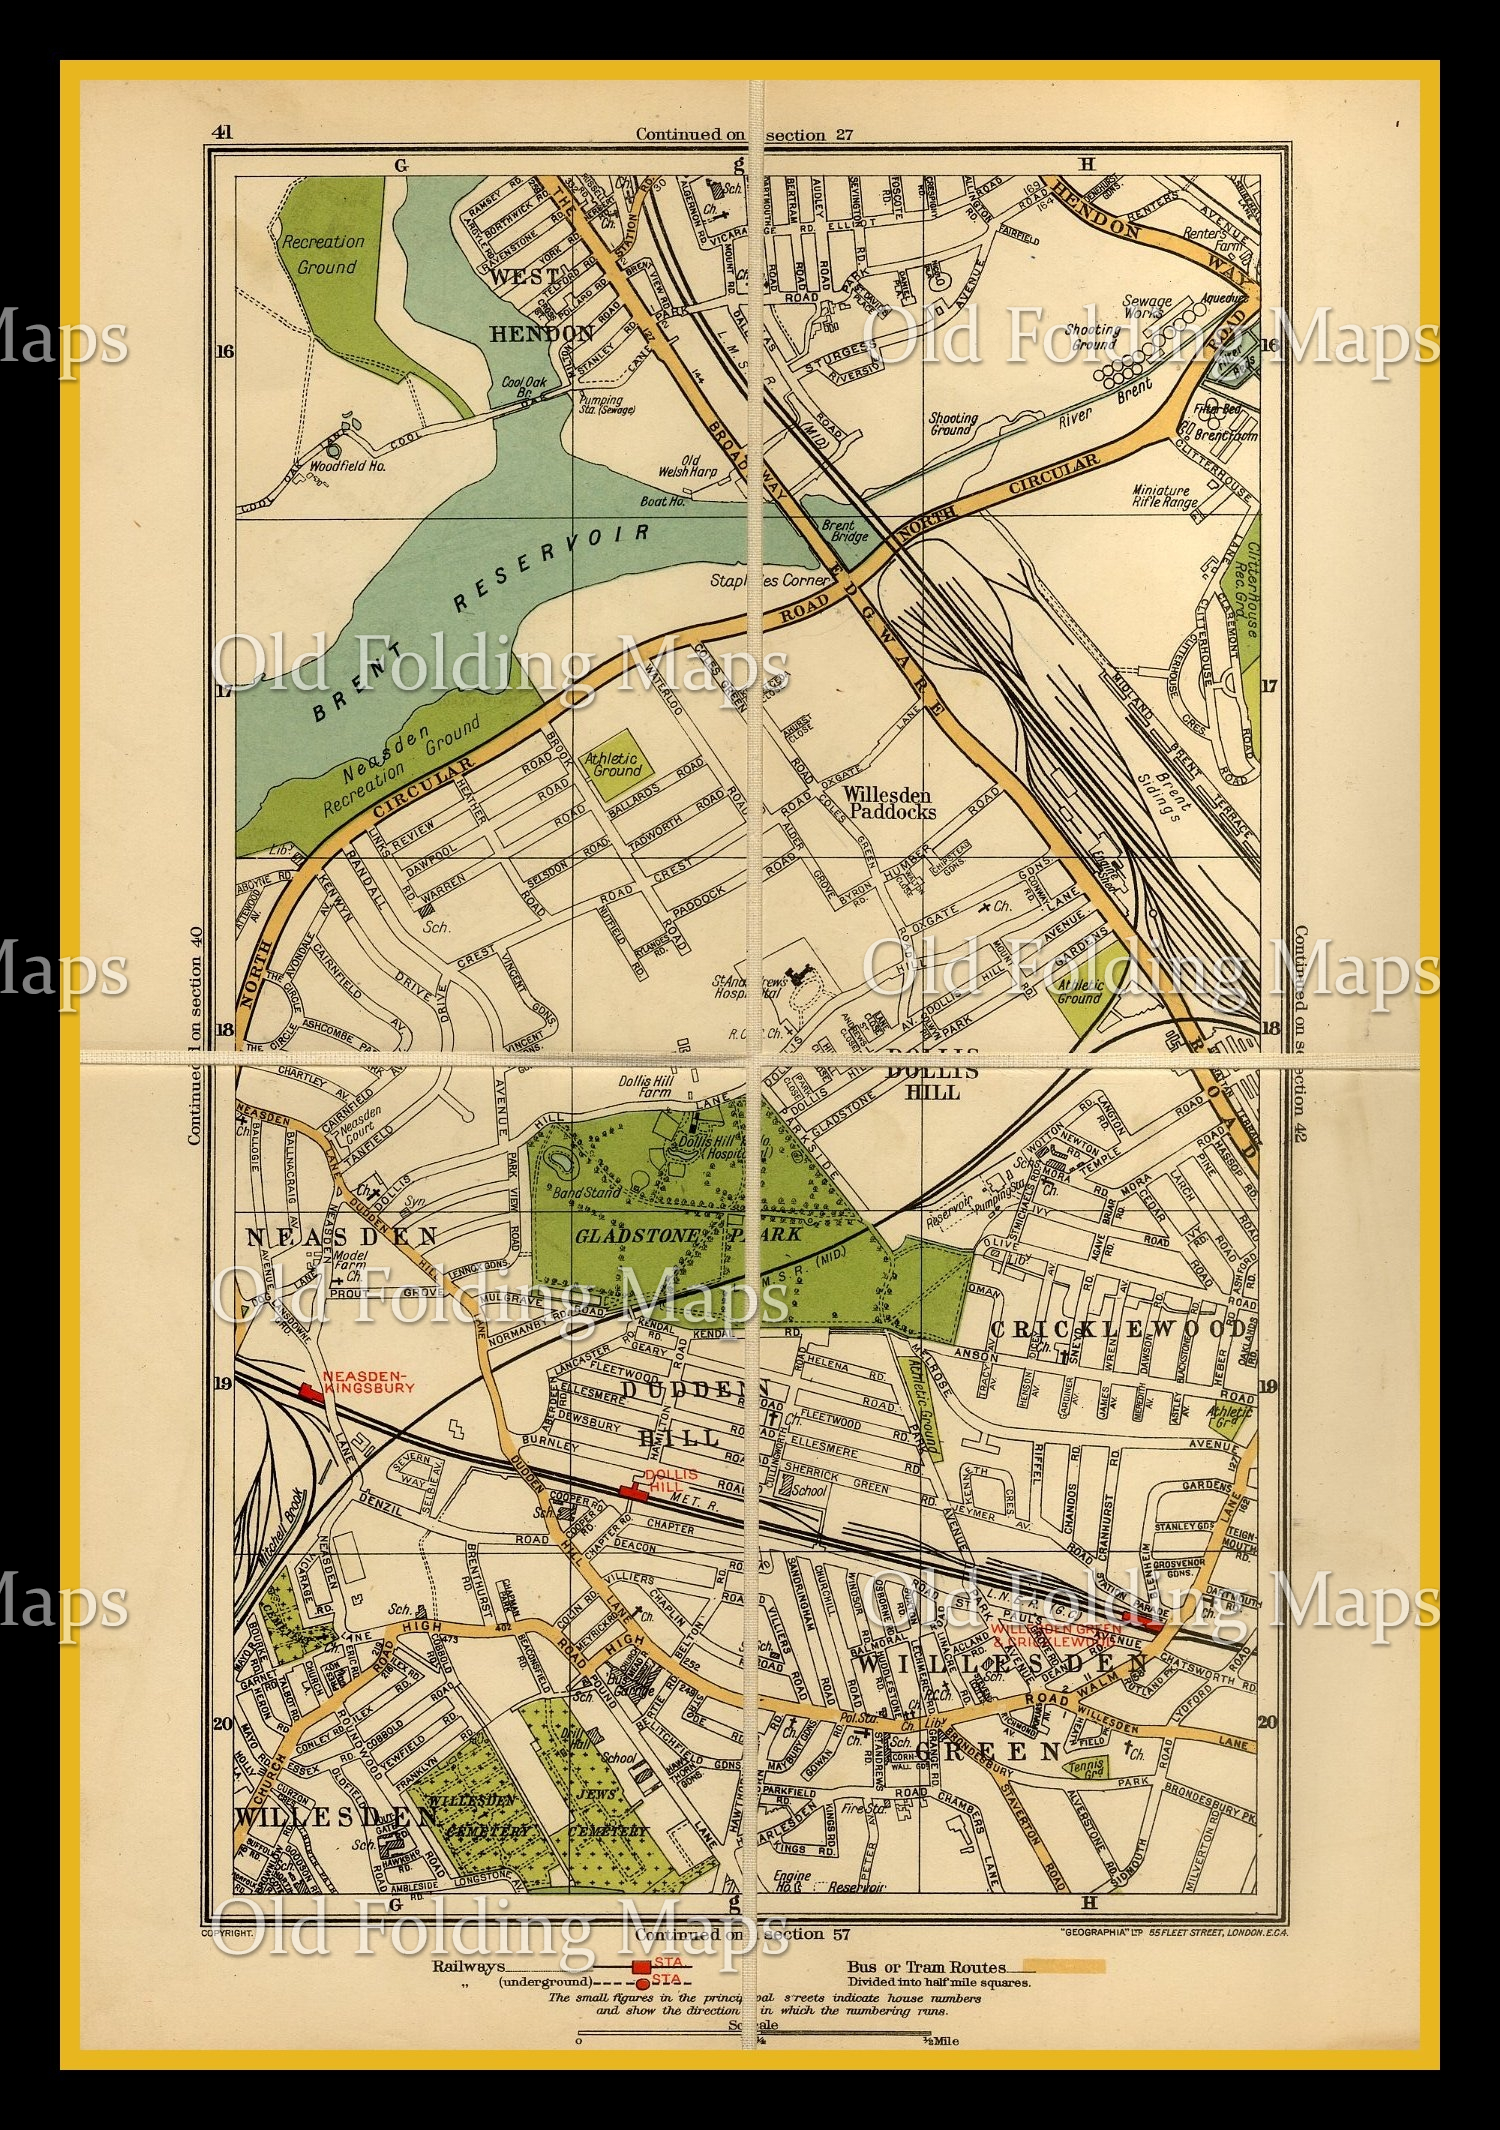 Old London Map of Brent, Dollis Hill & Willesden Green circa 1930's